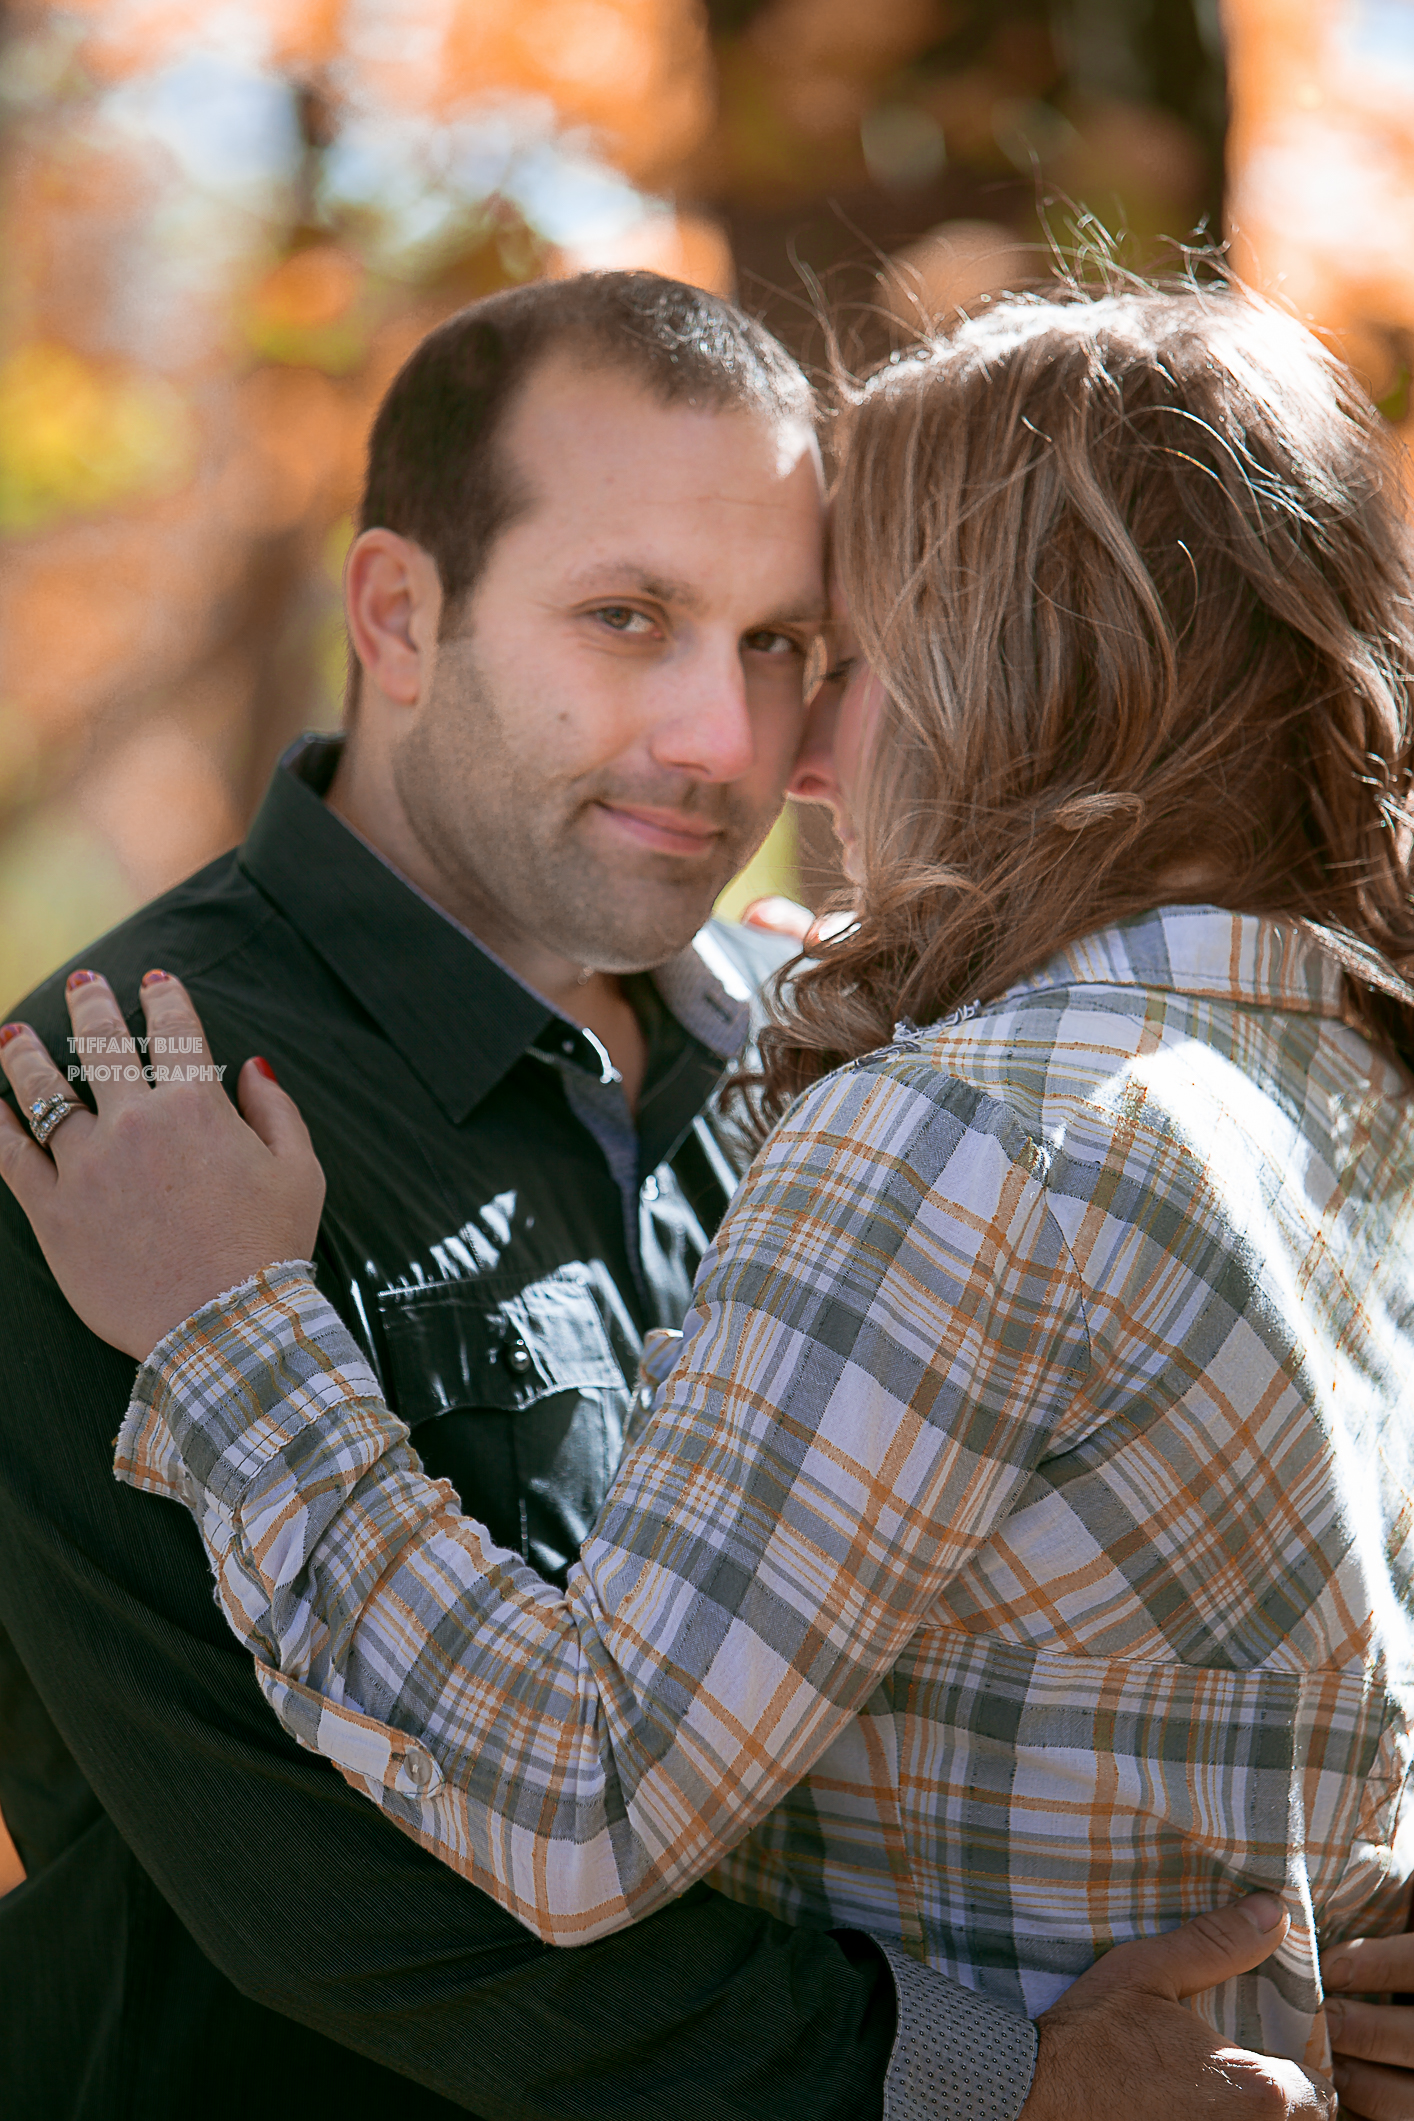 Paul + Heather Engagement  (32 of 36).jpg